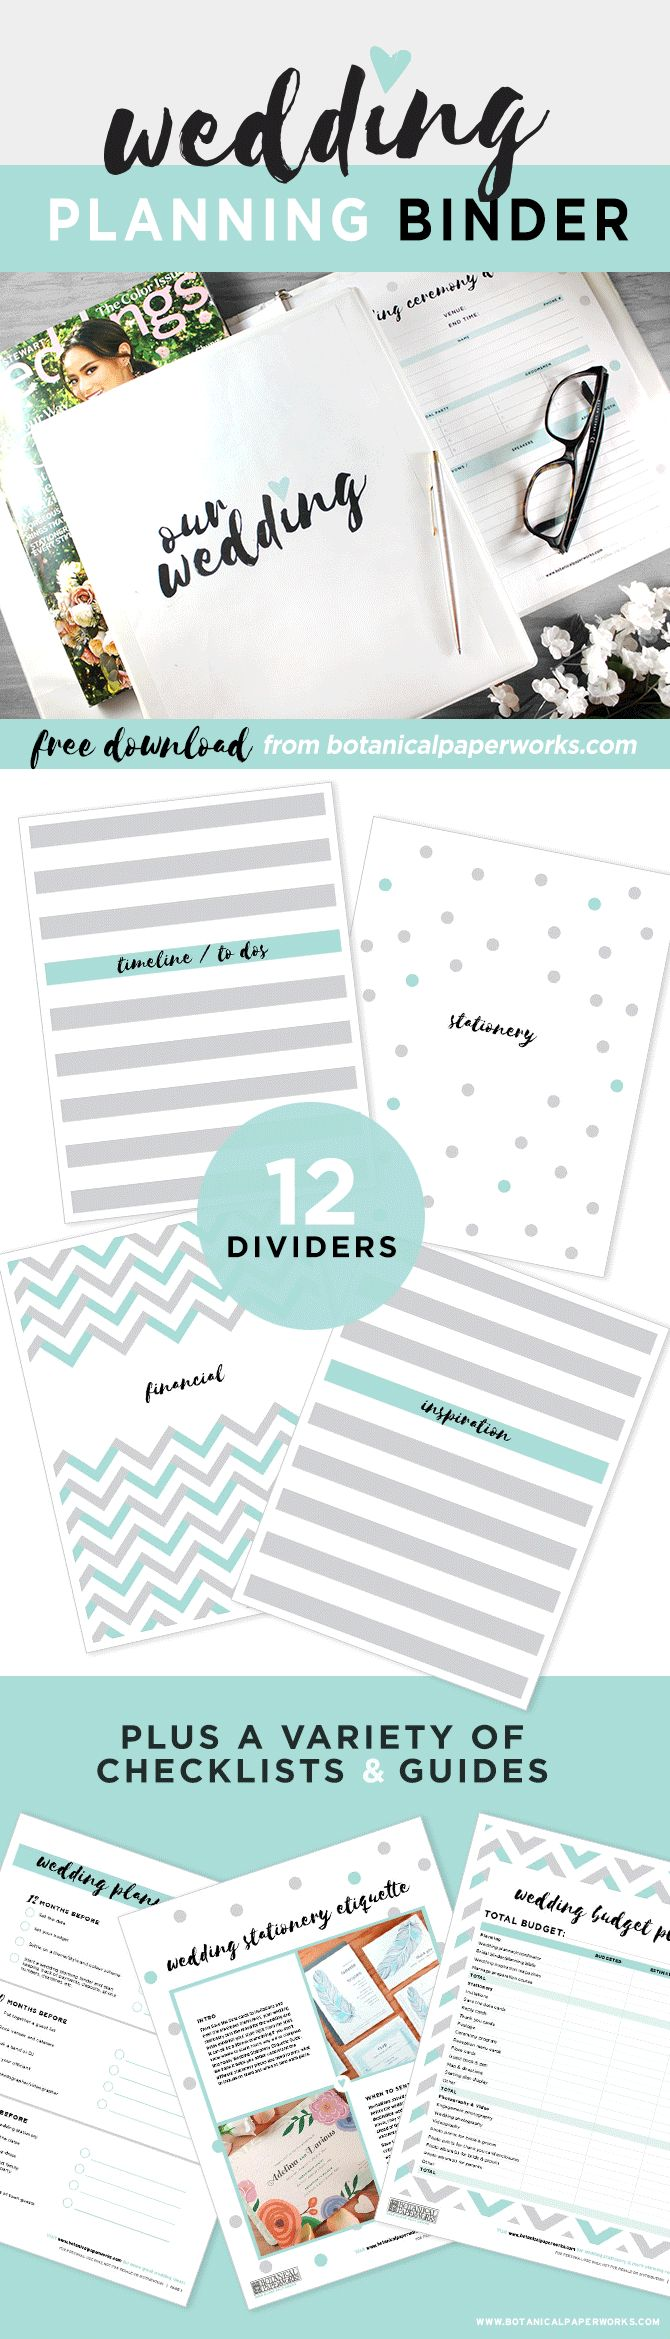 wedding planner binder wedding planner binder This FreePrintable Wedding Planning Binder comes in 3 color options and is filled with planning